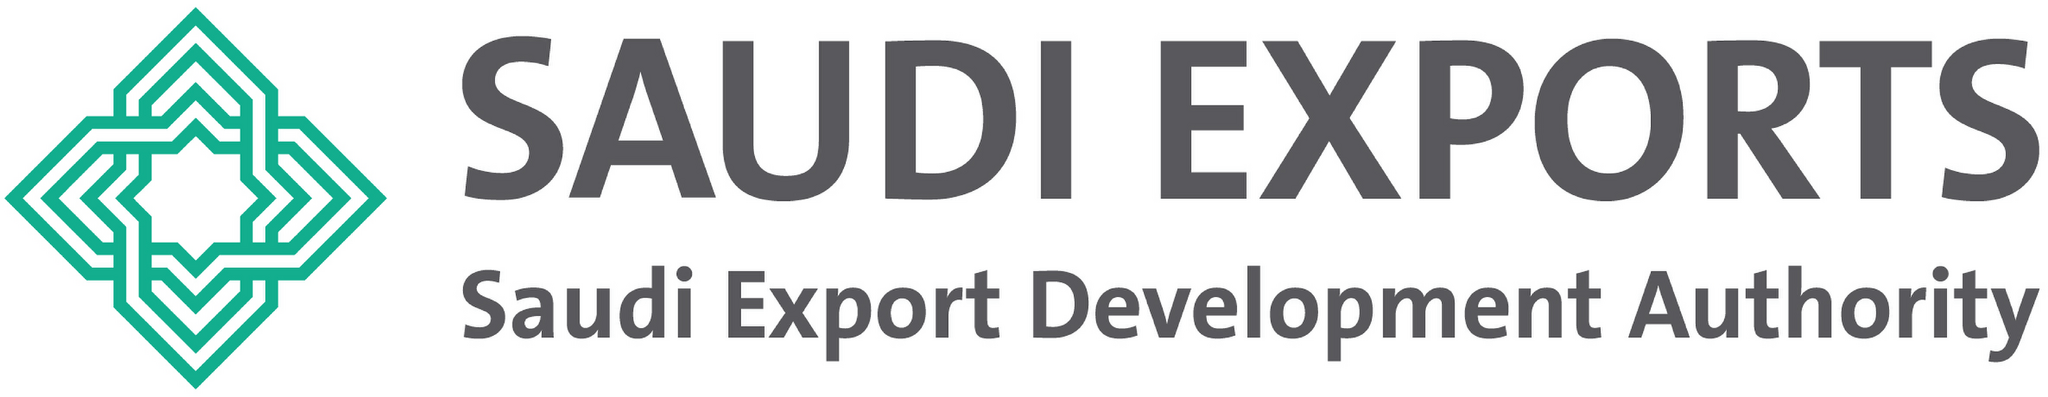 Saudi Export Development Authority - SEDA